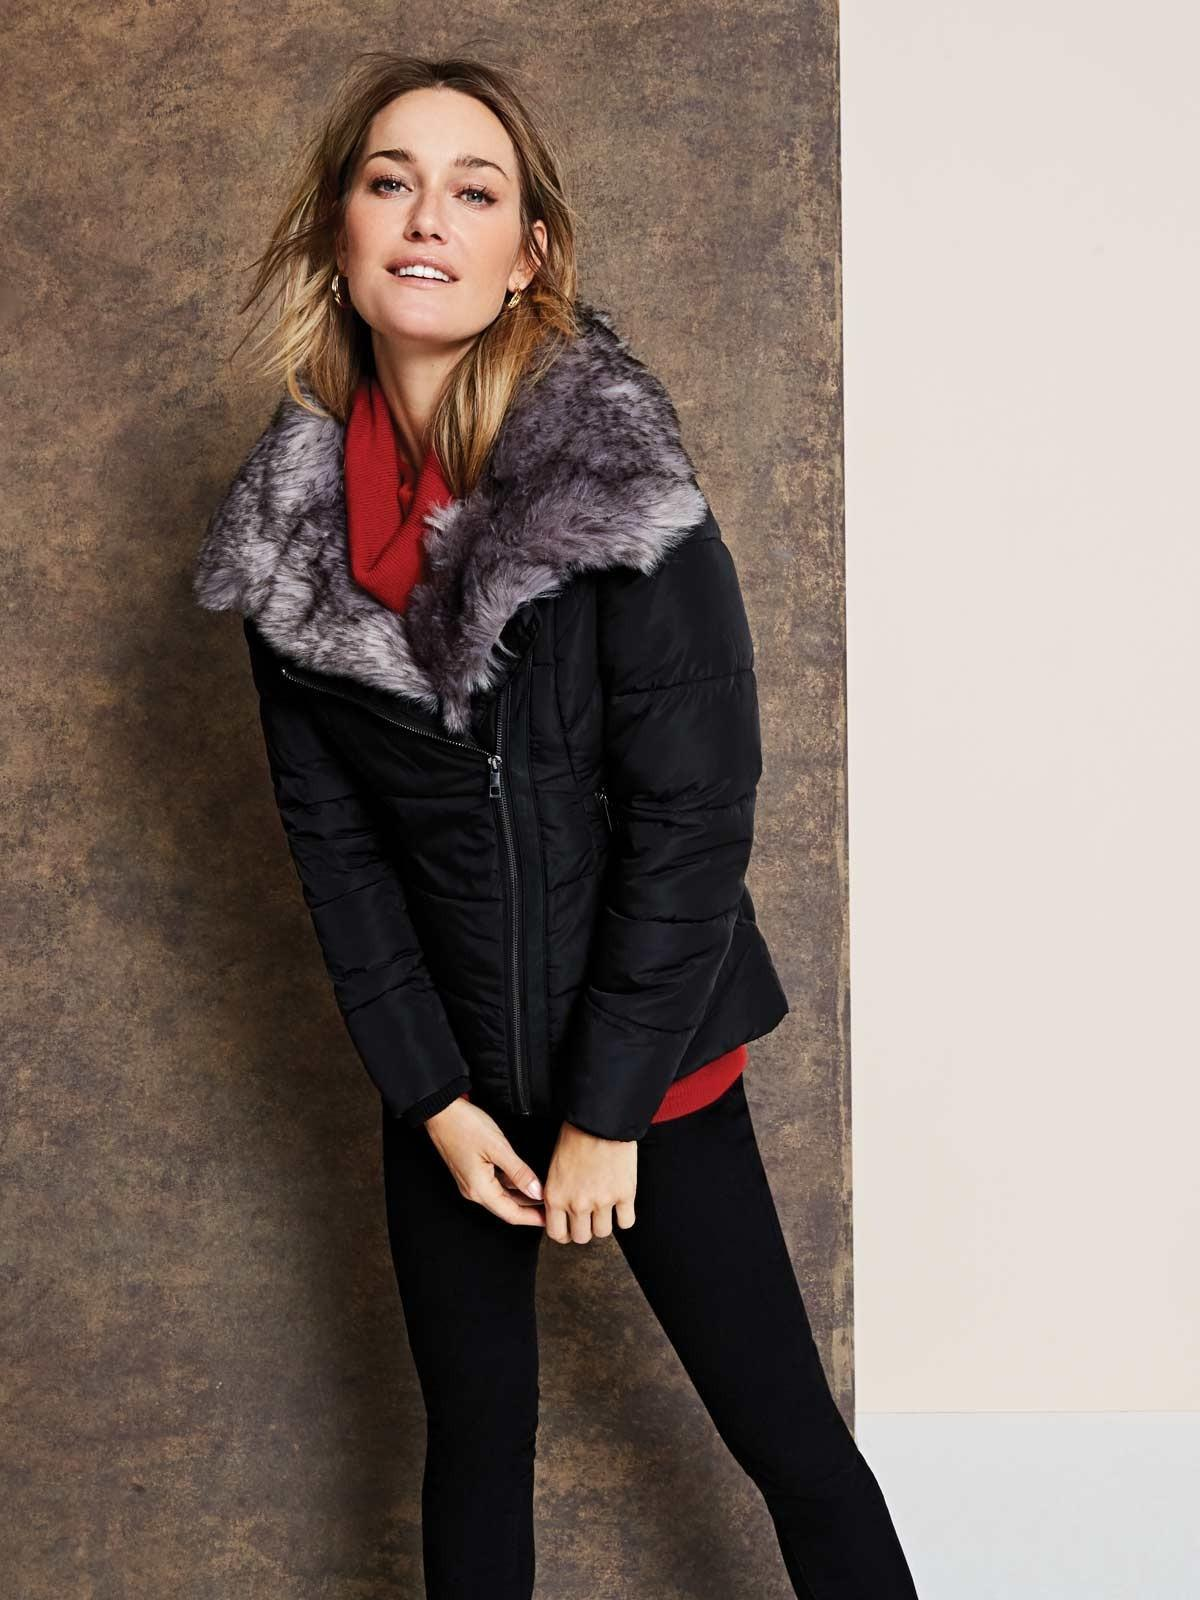 A cropped cut and glamorous fur collar equals a stylish winter coat for day and night.